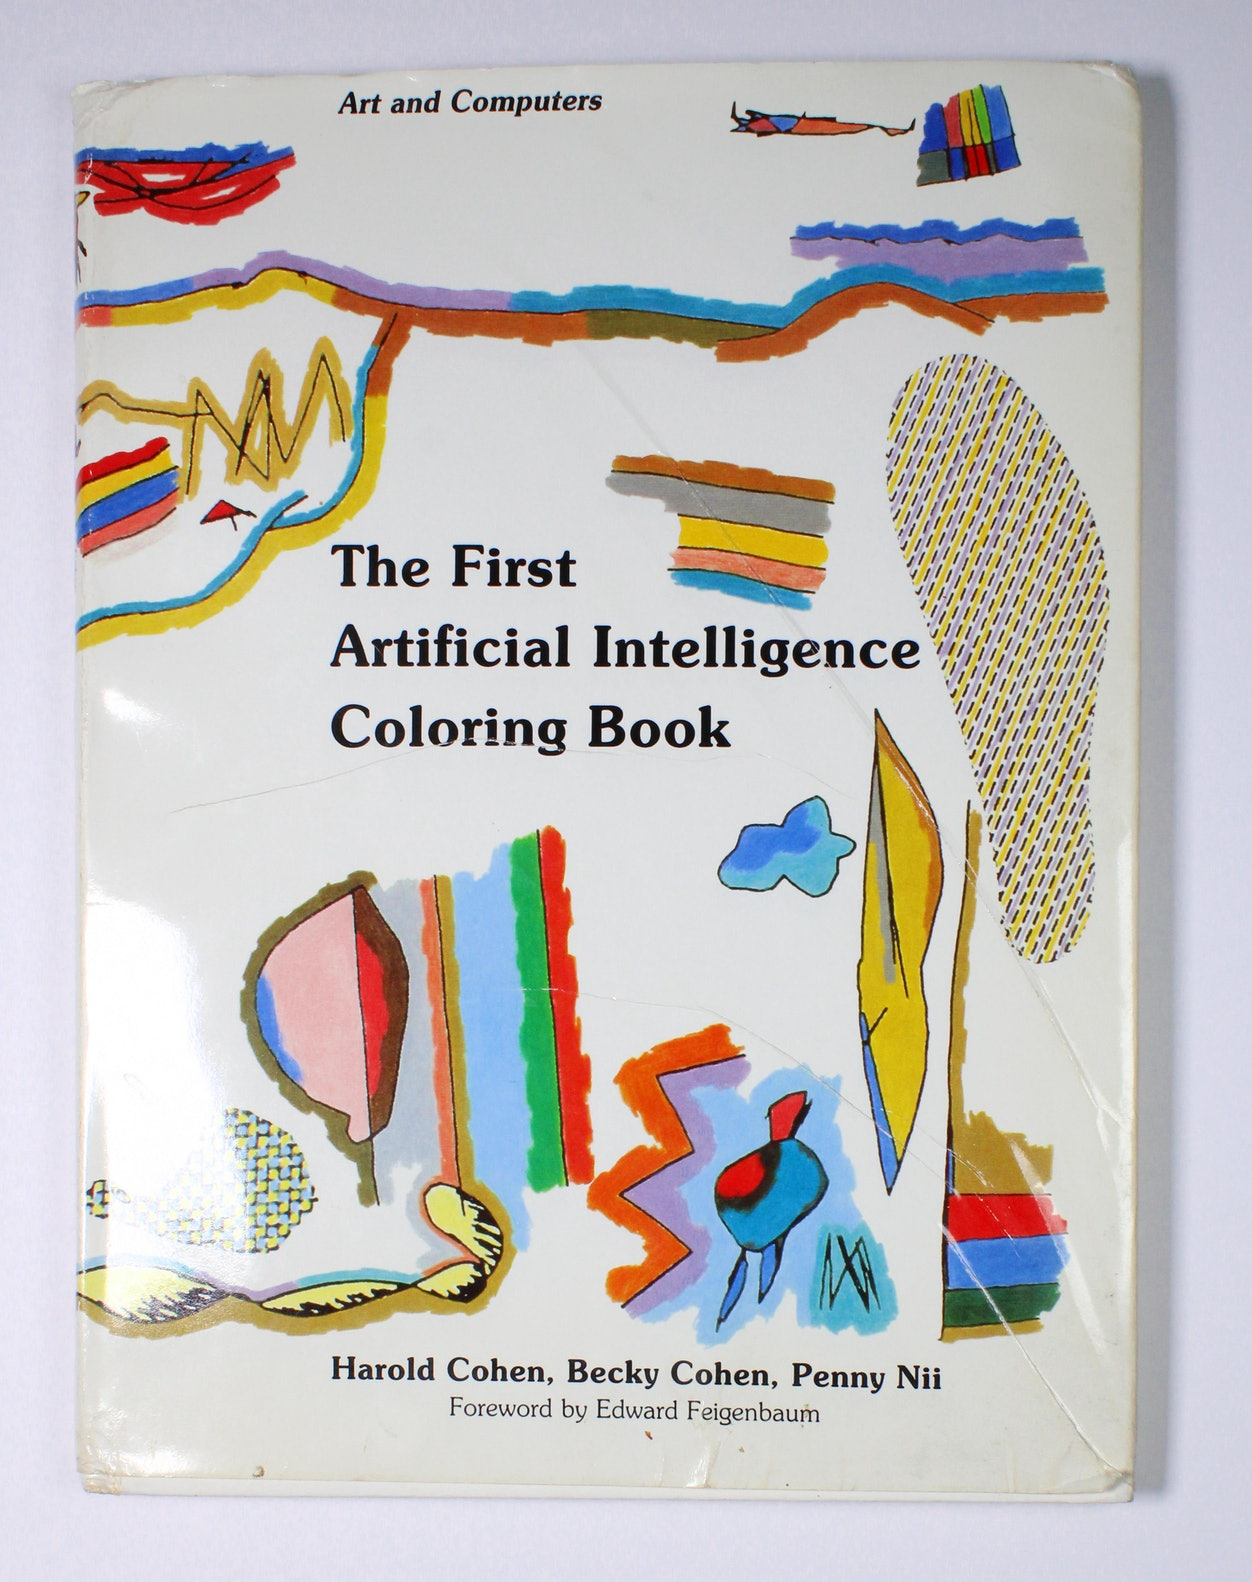 The First Artificial Intelligence Coloring Book